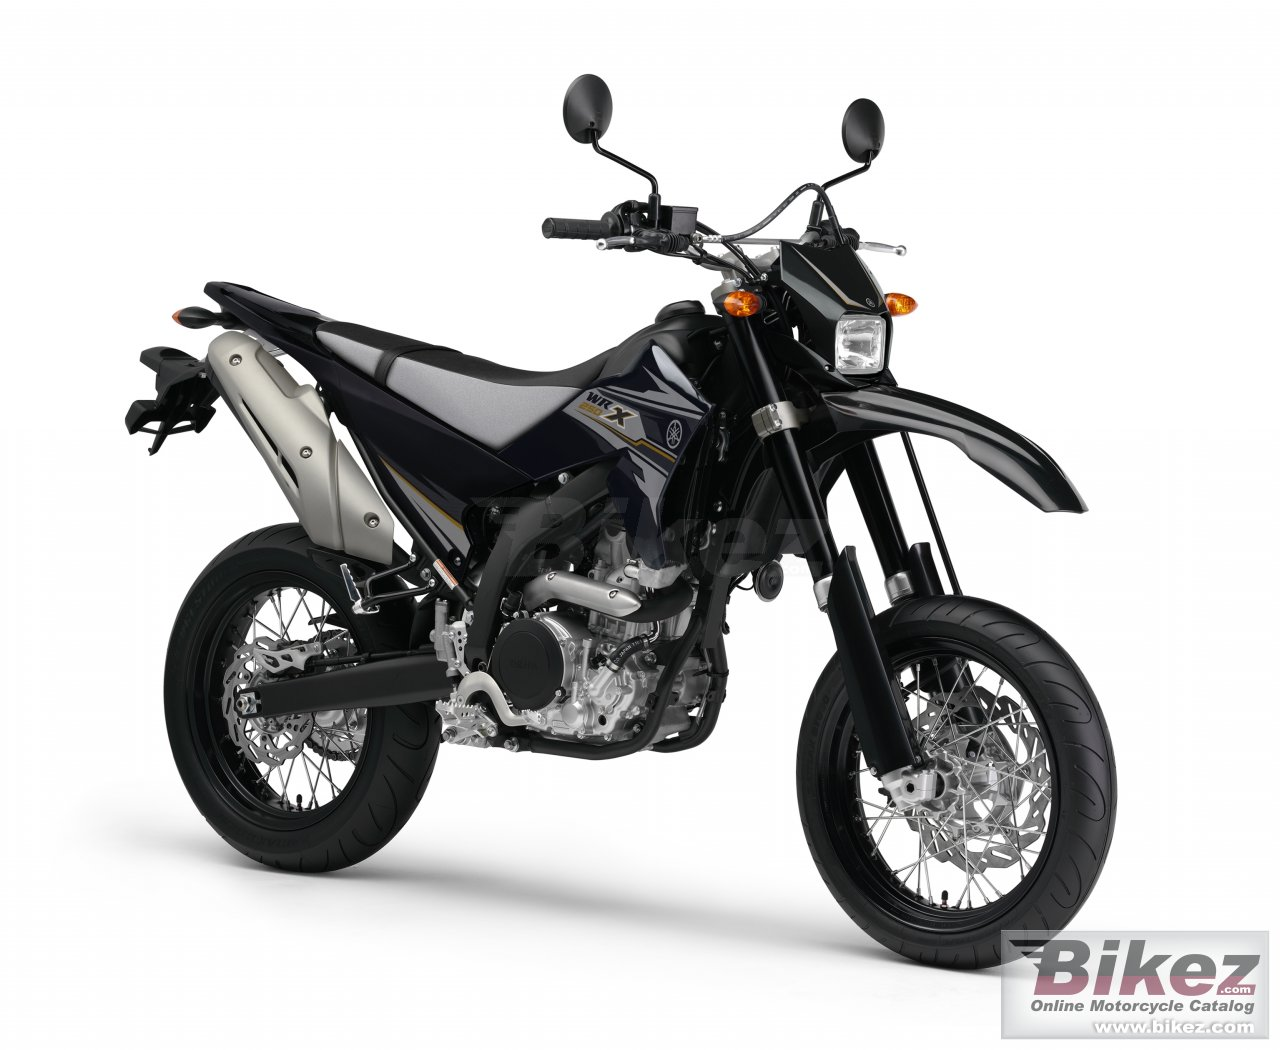 Big Yamaha wr250x picture and wallpaper from Bikez.com